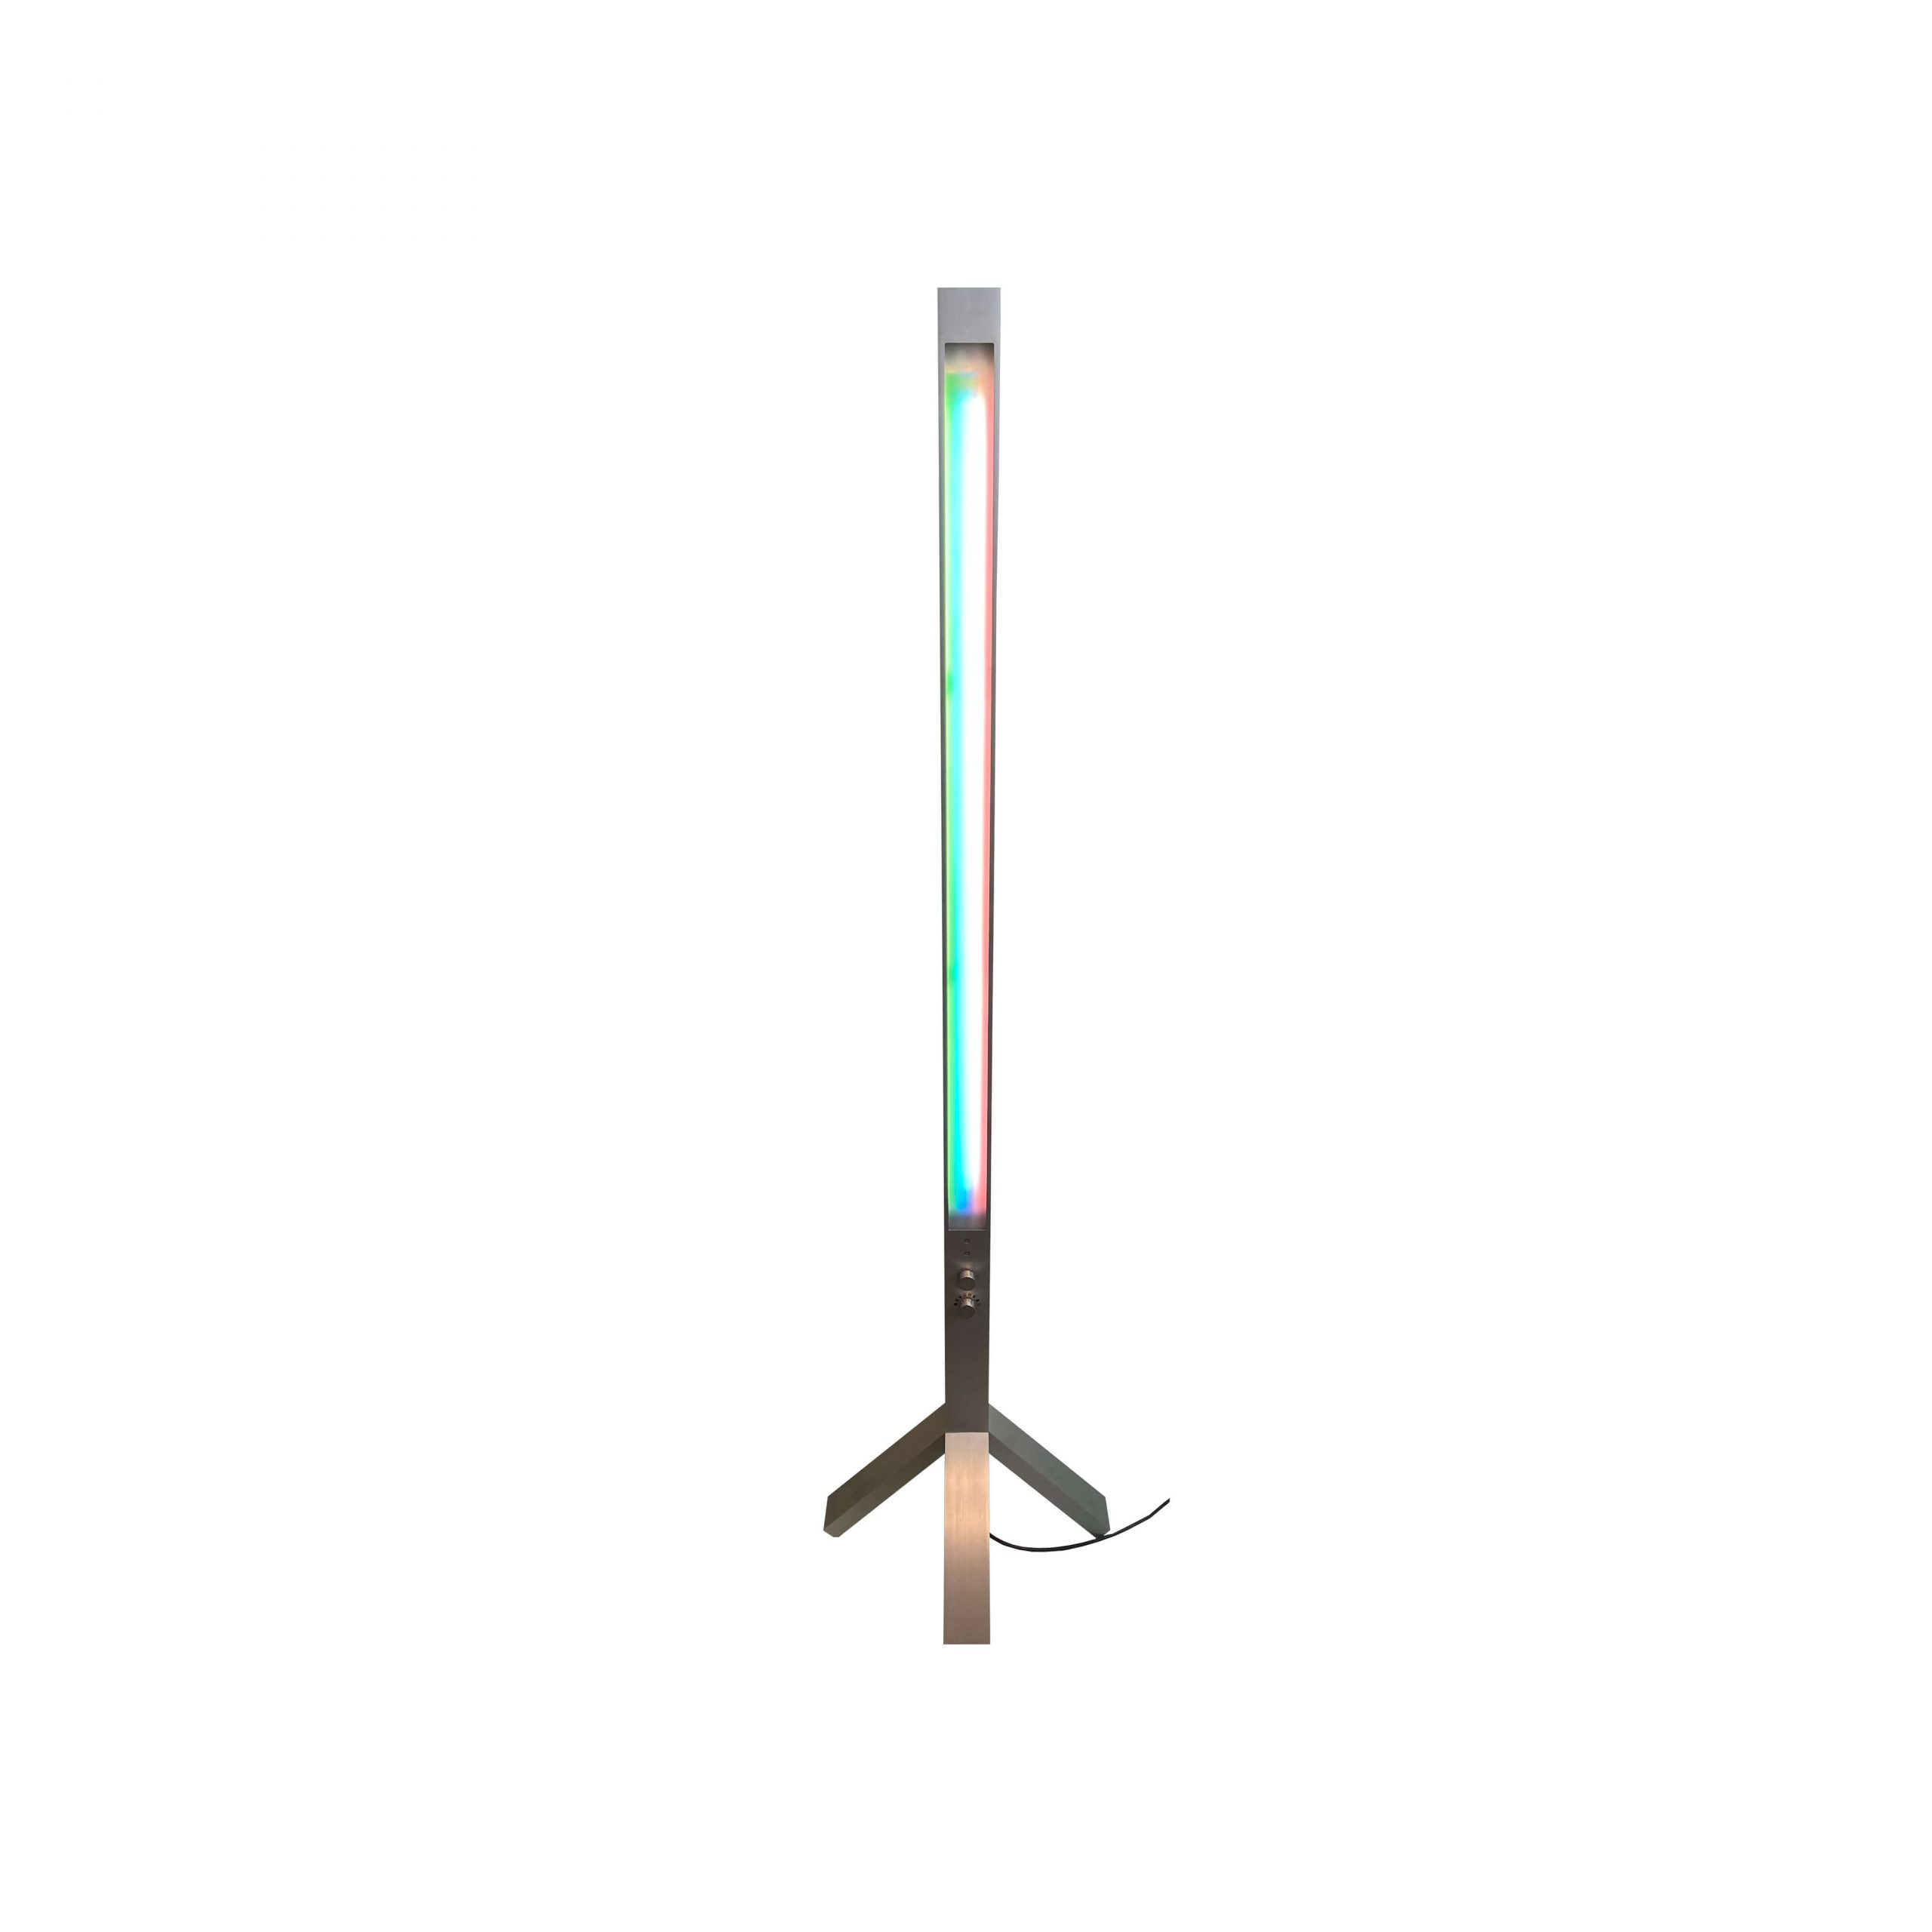 Stehlampe Bastcolore